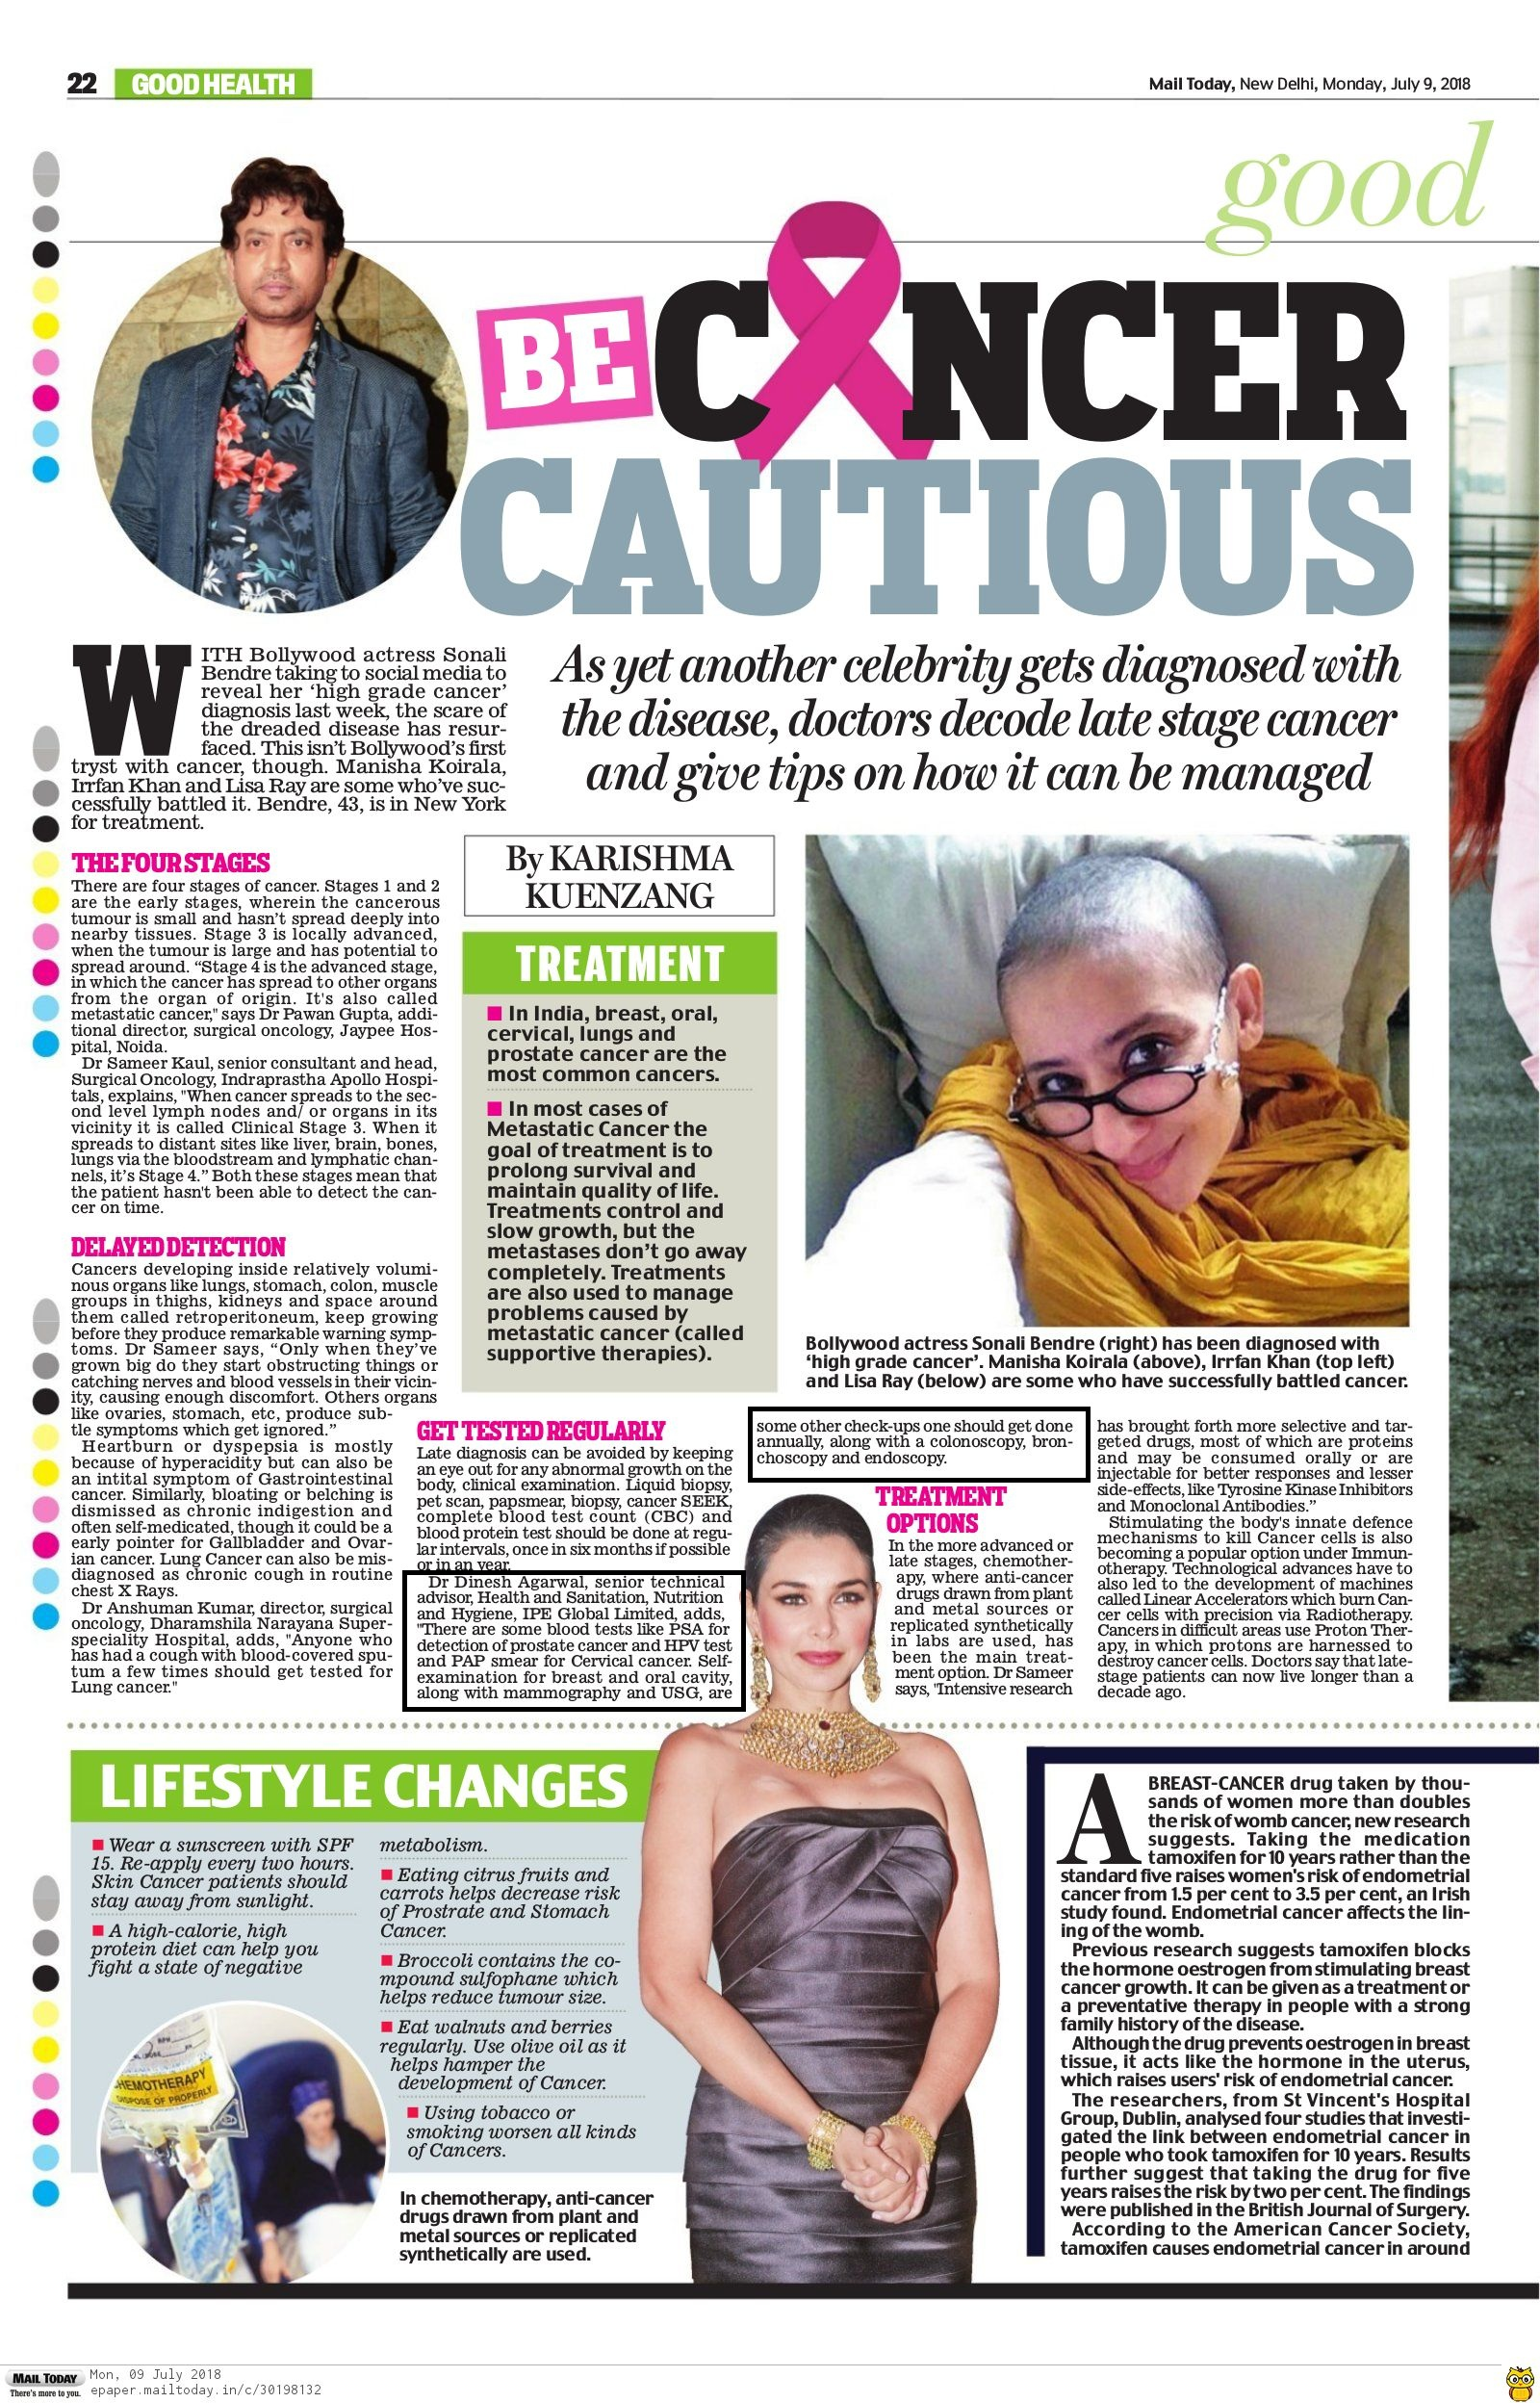 Dr. Dinesh Agarwal features in Mail Today article 'Be Cancer Cautious'